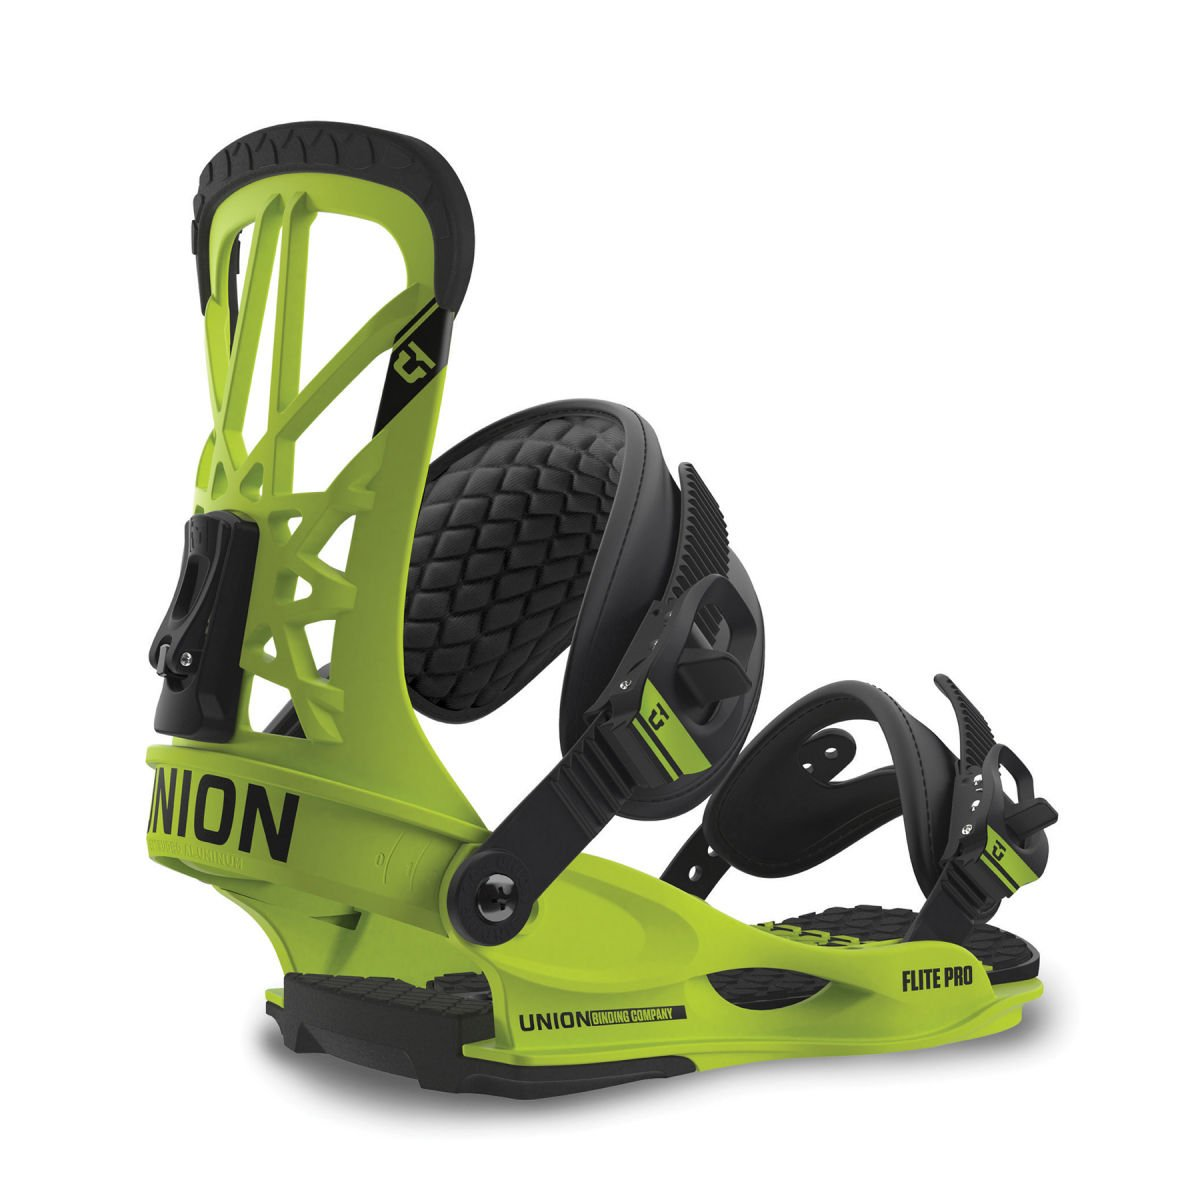 Top 10 Best Snowboard Bindings (2020 Reviews & Buying Guide) 7